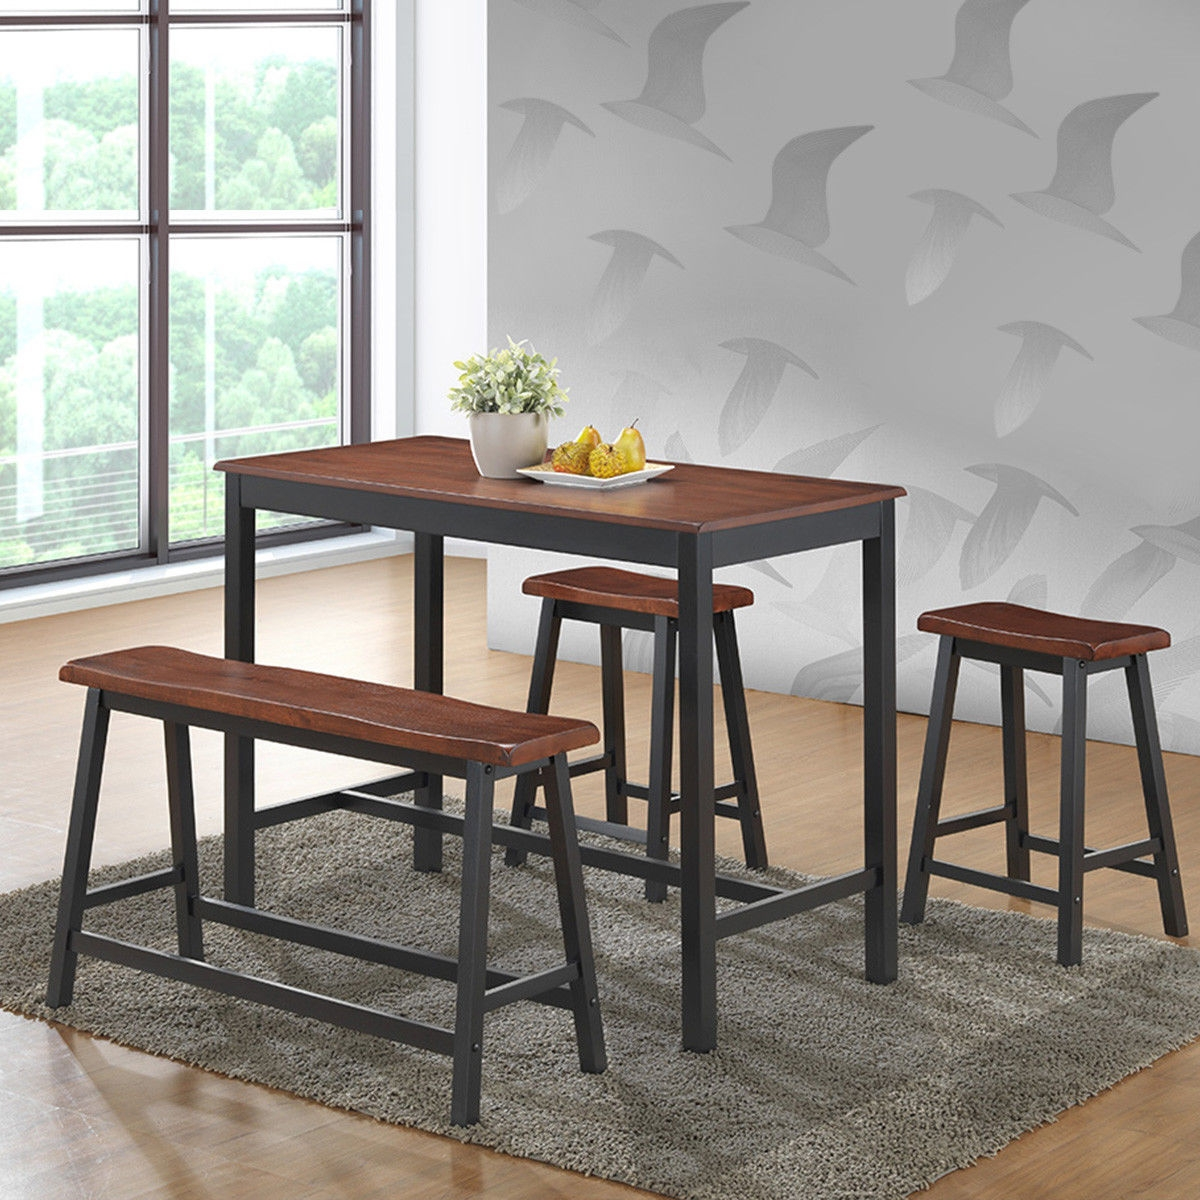 4 pcs Solid Wood Counter Height Dining Table Set